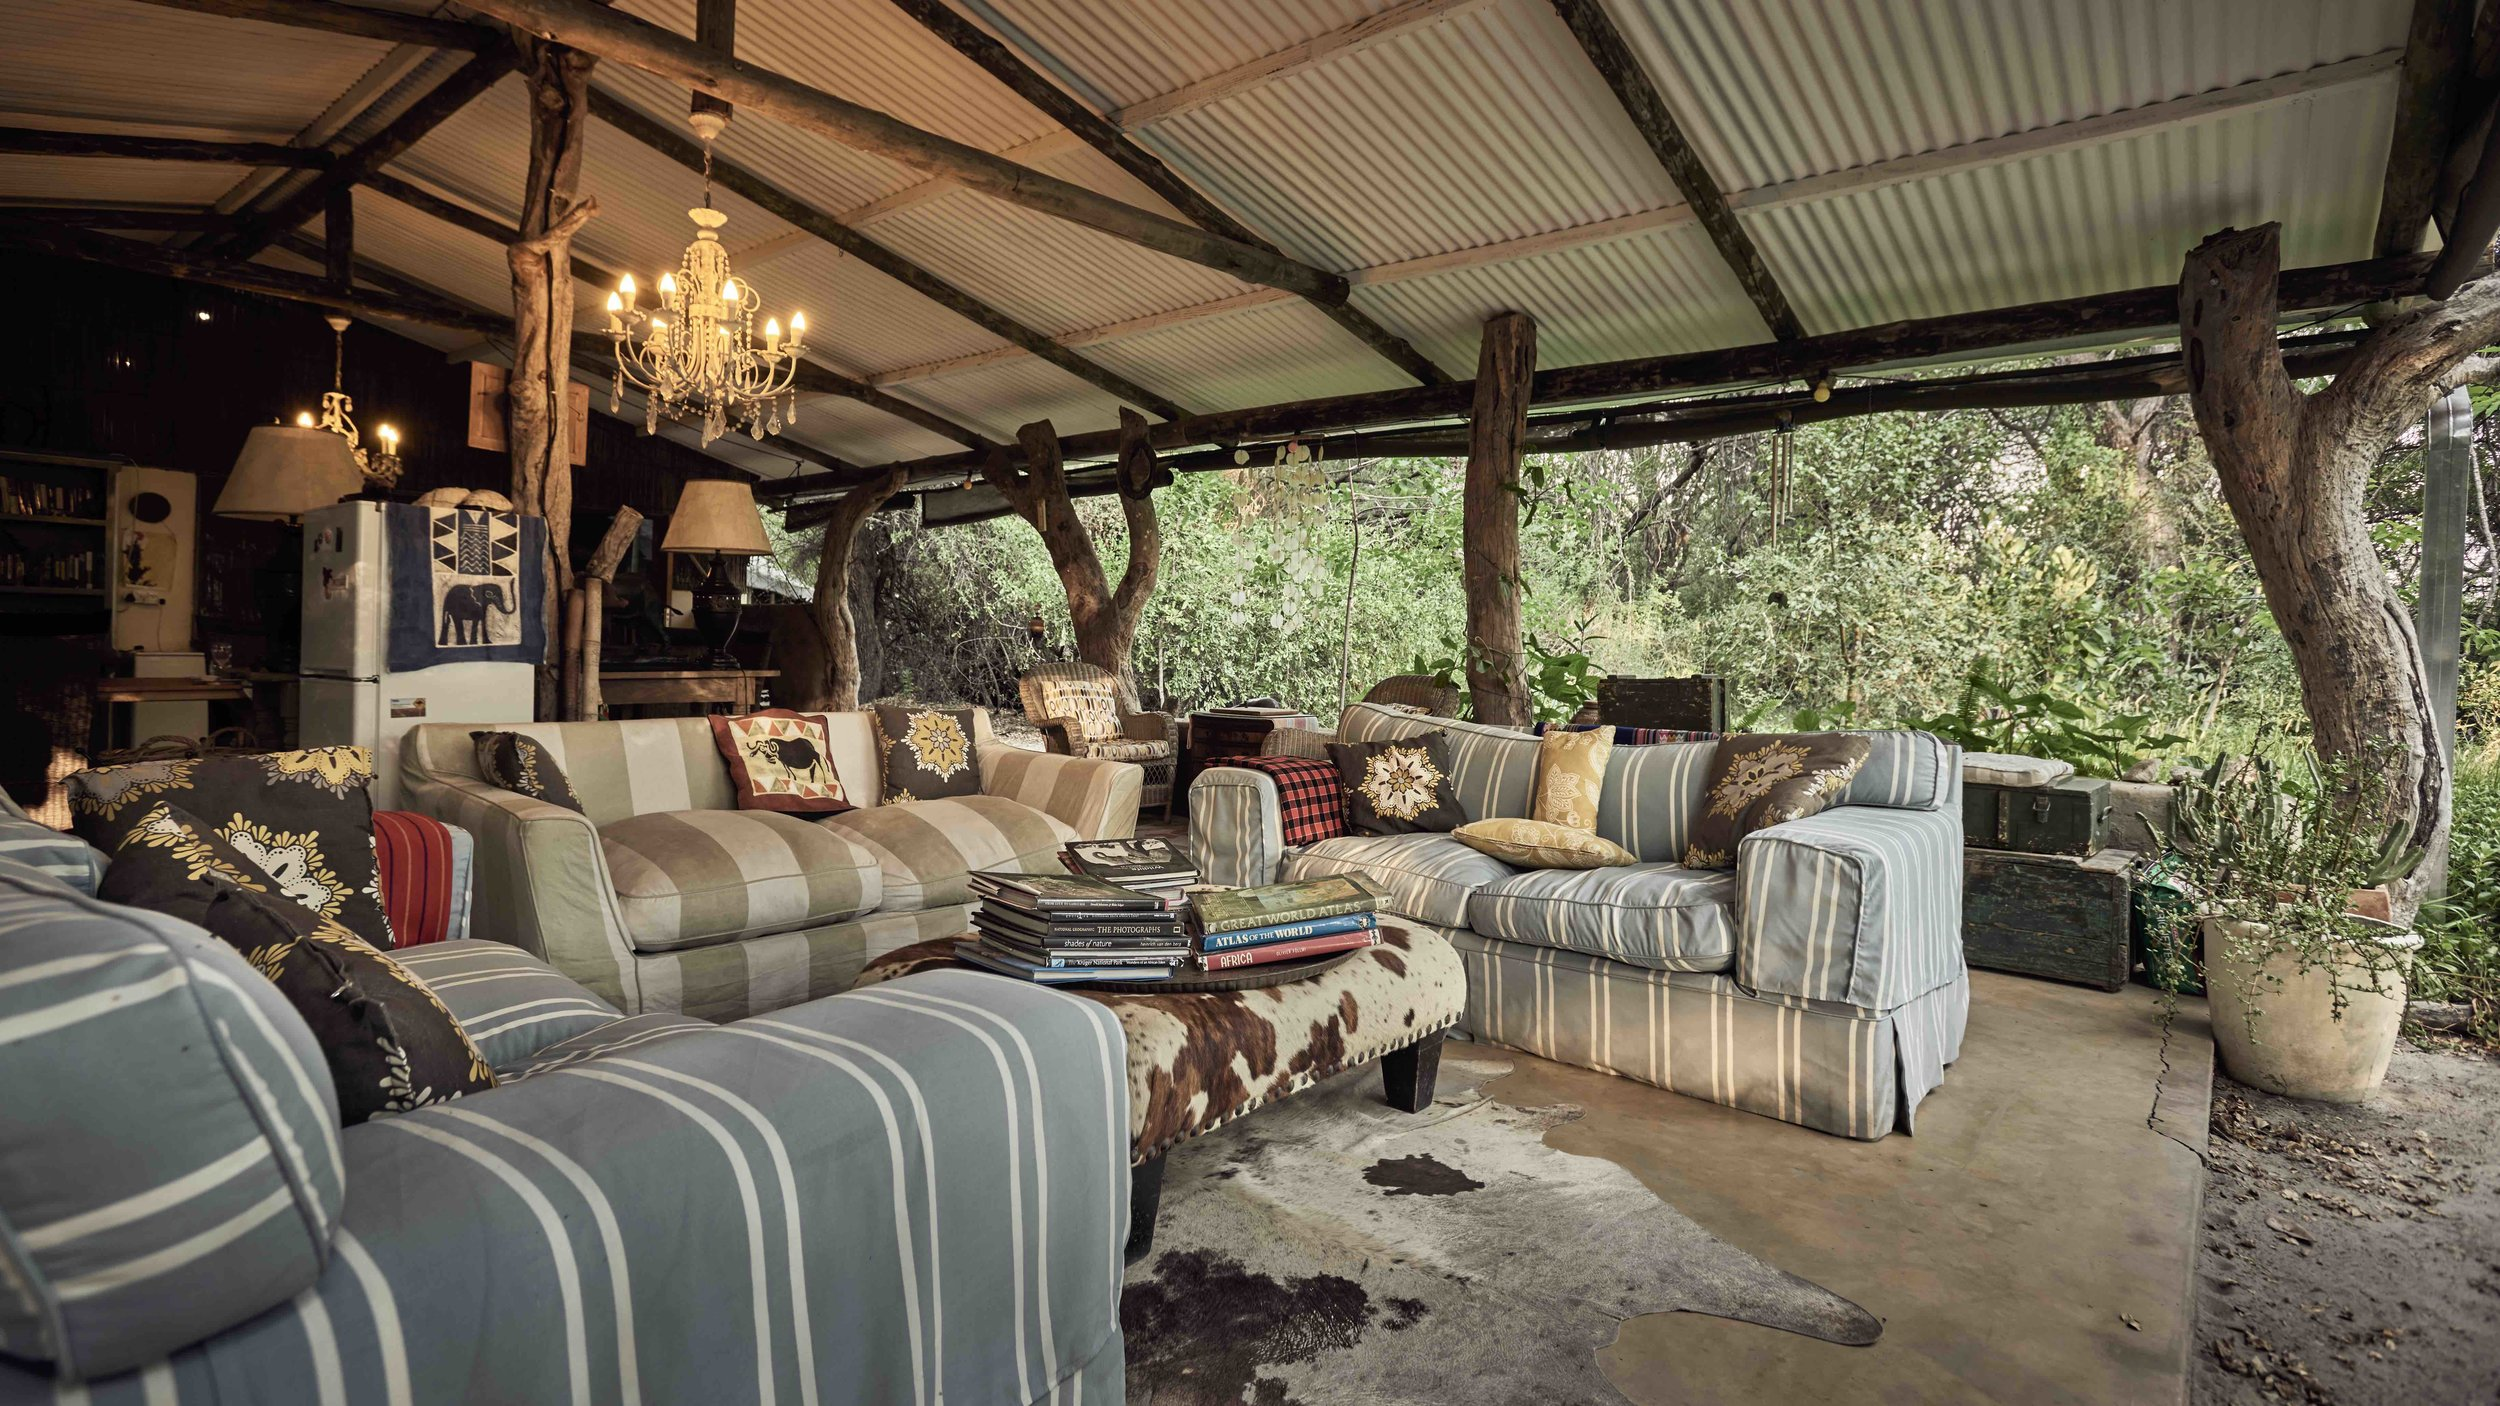 Relax in our lounge area open to the forest